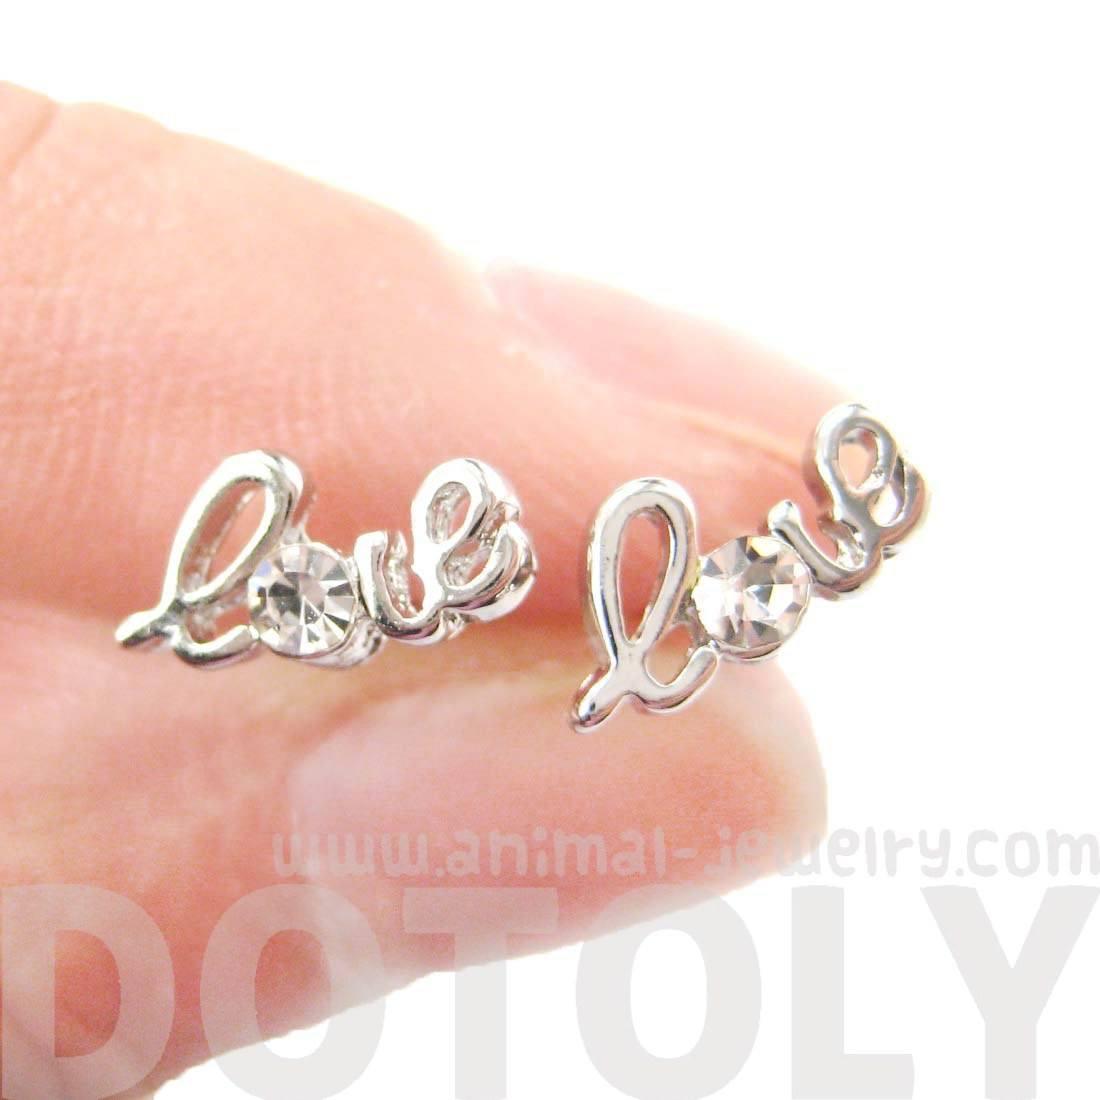 Tiny Love Cursive Letter Shaped Rhinestones Stud Earrings in Silver